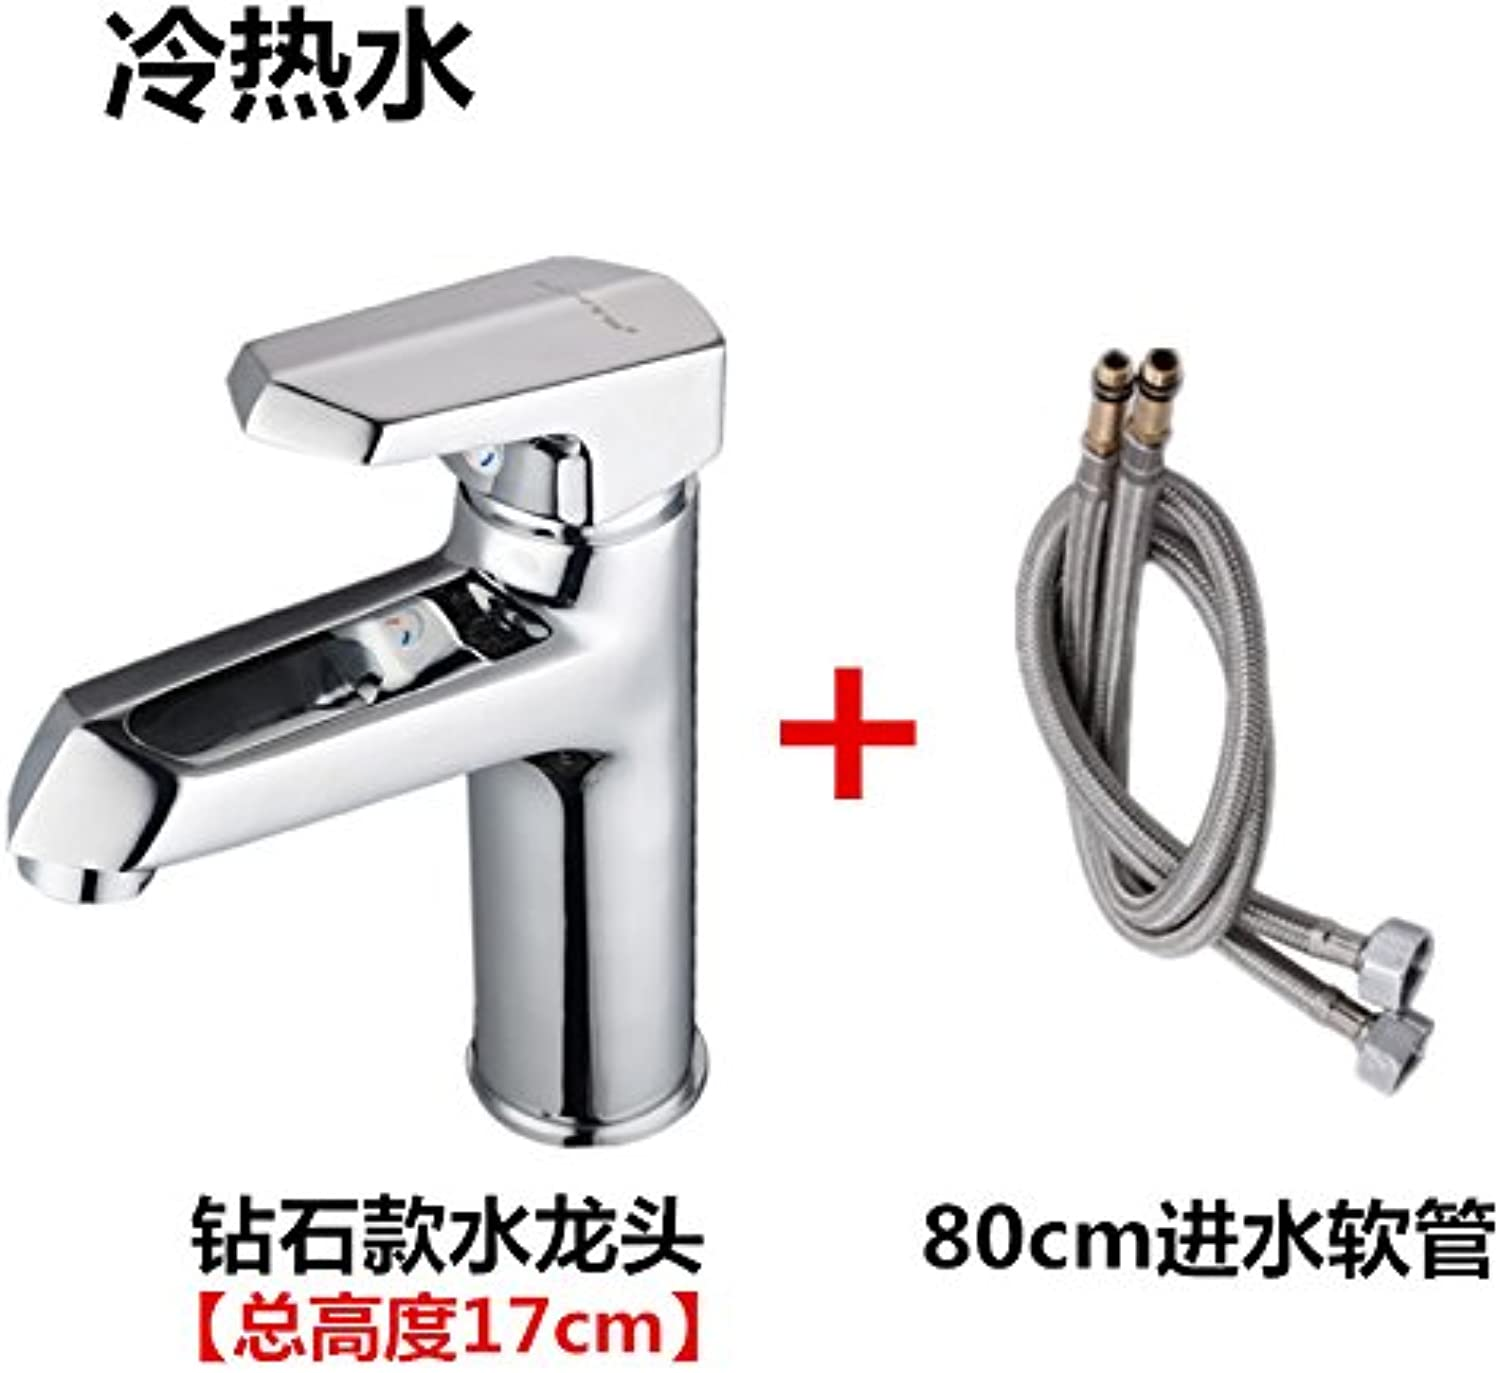 STAZSX European?hot and cold?faucets?kitchen?and?bathroom?bathroom?toilet?above counter?basin?basin?lavatory?sink?faucet?indoor?faucets,?A8